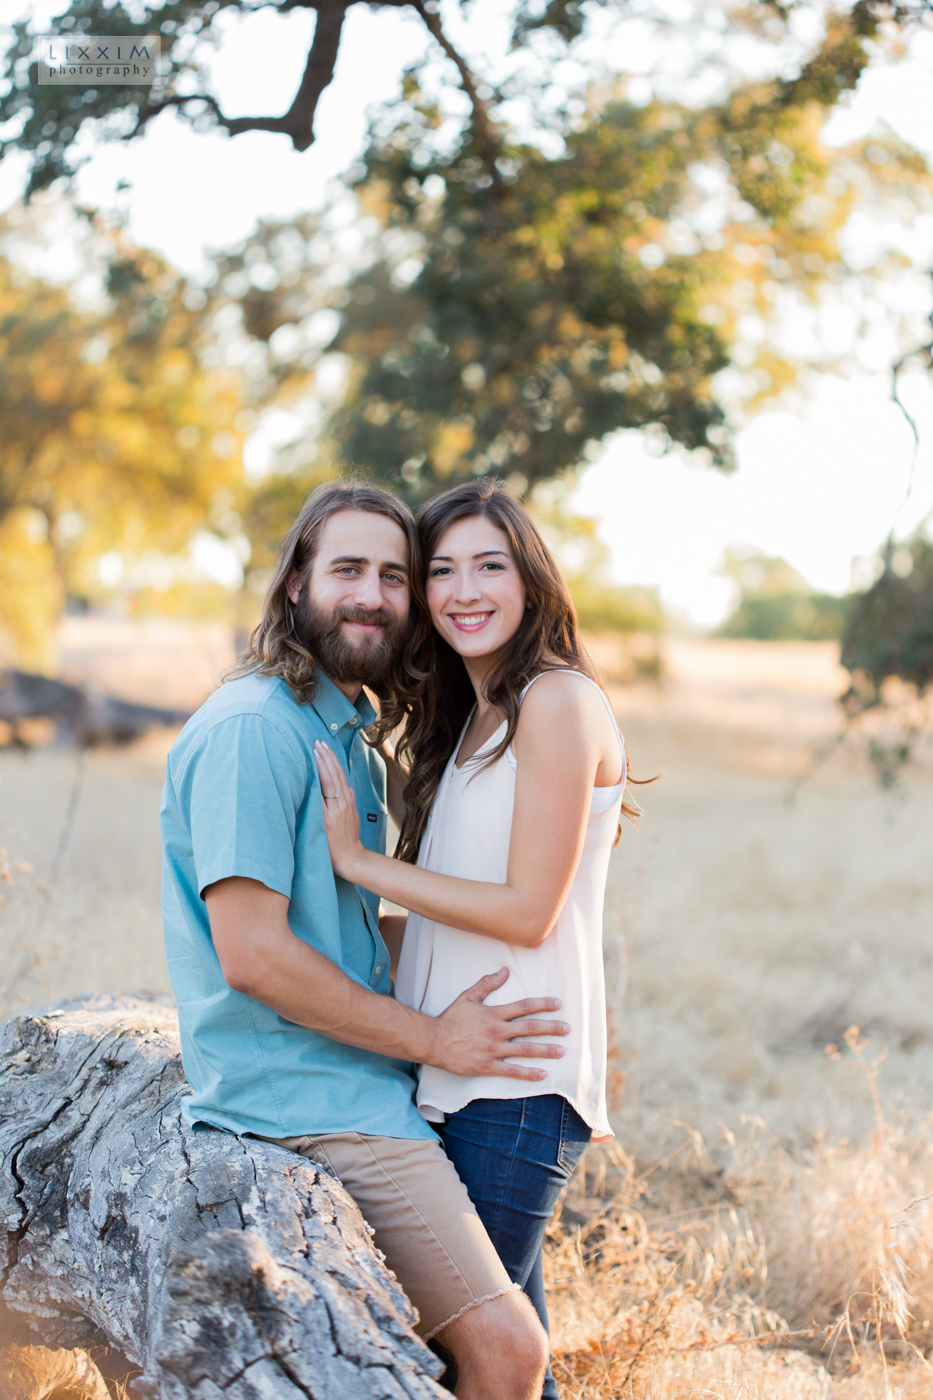 folsom-california-engagement-session-photography-9.jpg